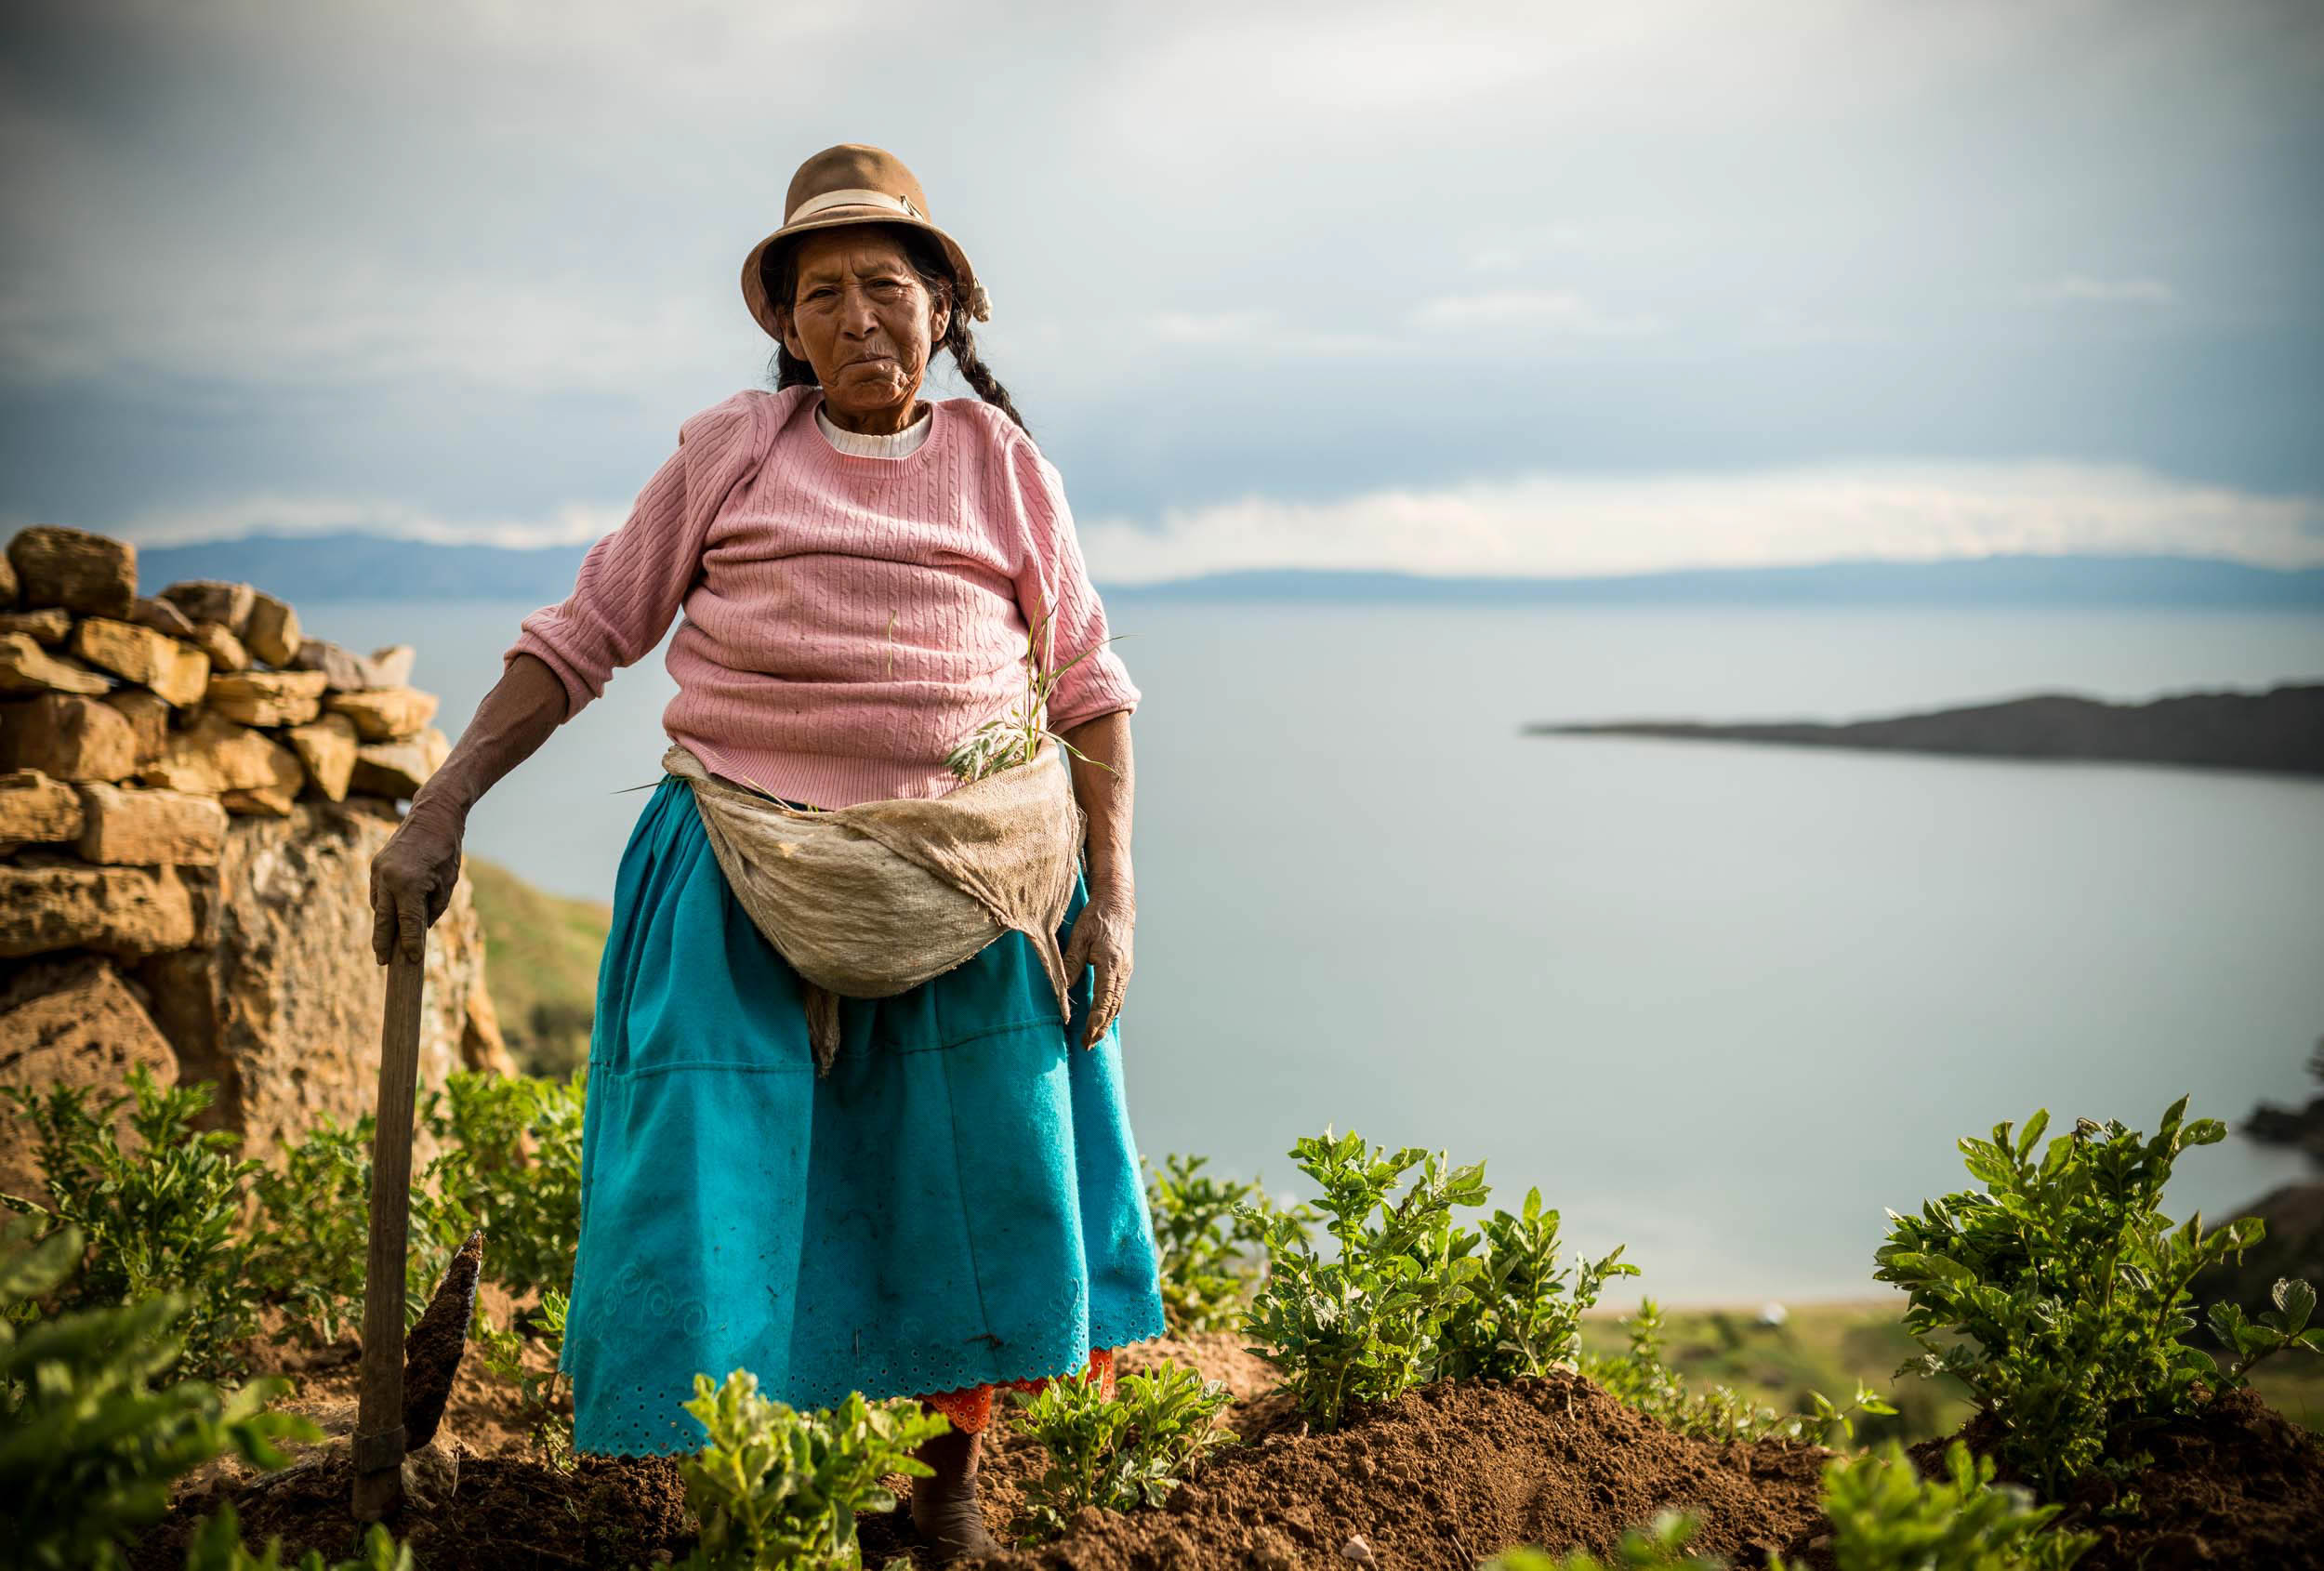 portrait-farmer-isla-del-sol-tradition-lake-titicaca-bolivia